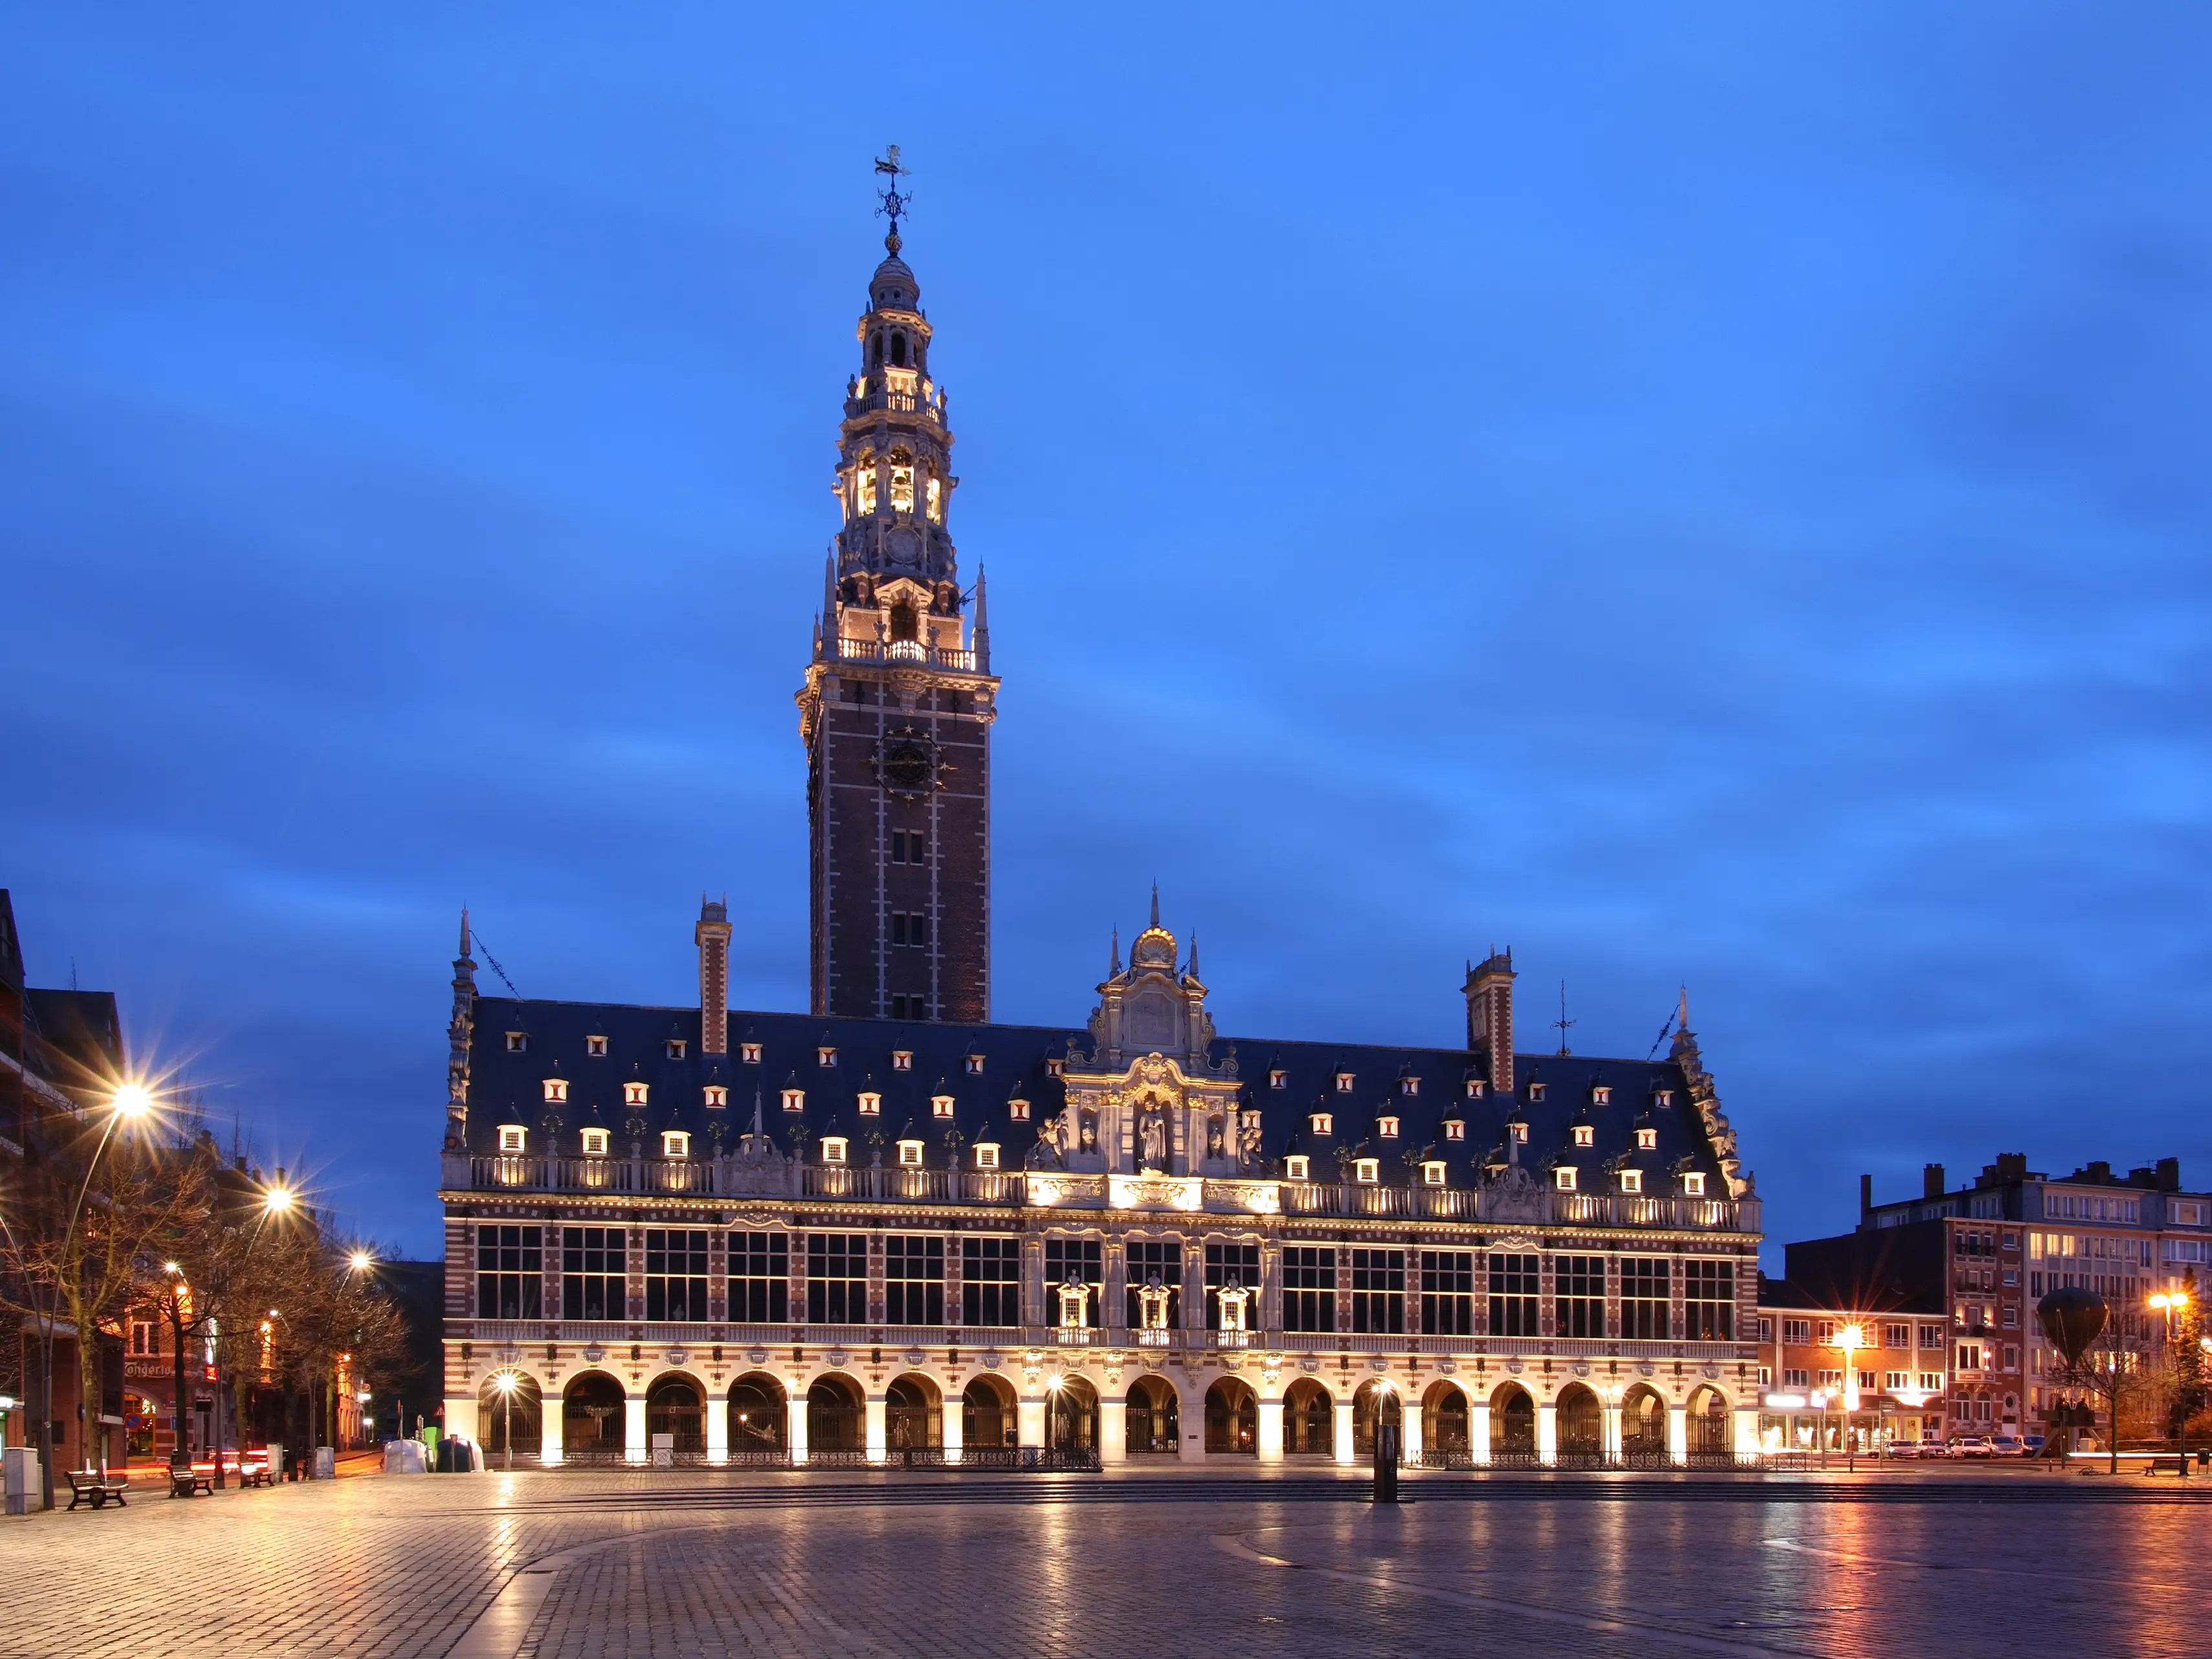 The historic Universiteitsbibliotheek KU Leuven opened in 1928 at Katholieke Universiteit Leuven in Belgium. It's a library that houses scientific information for researchers and students.